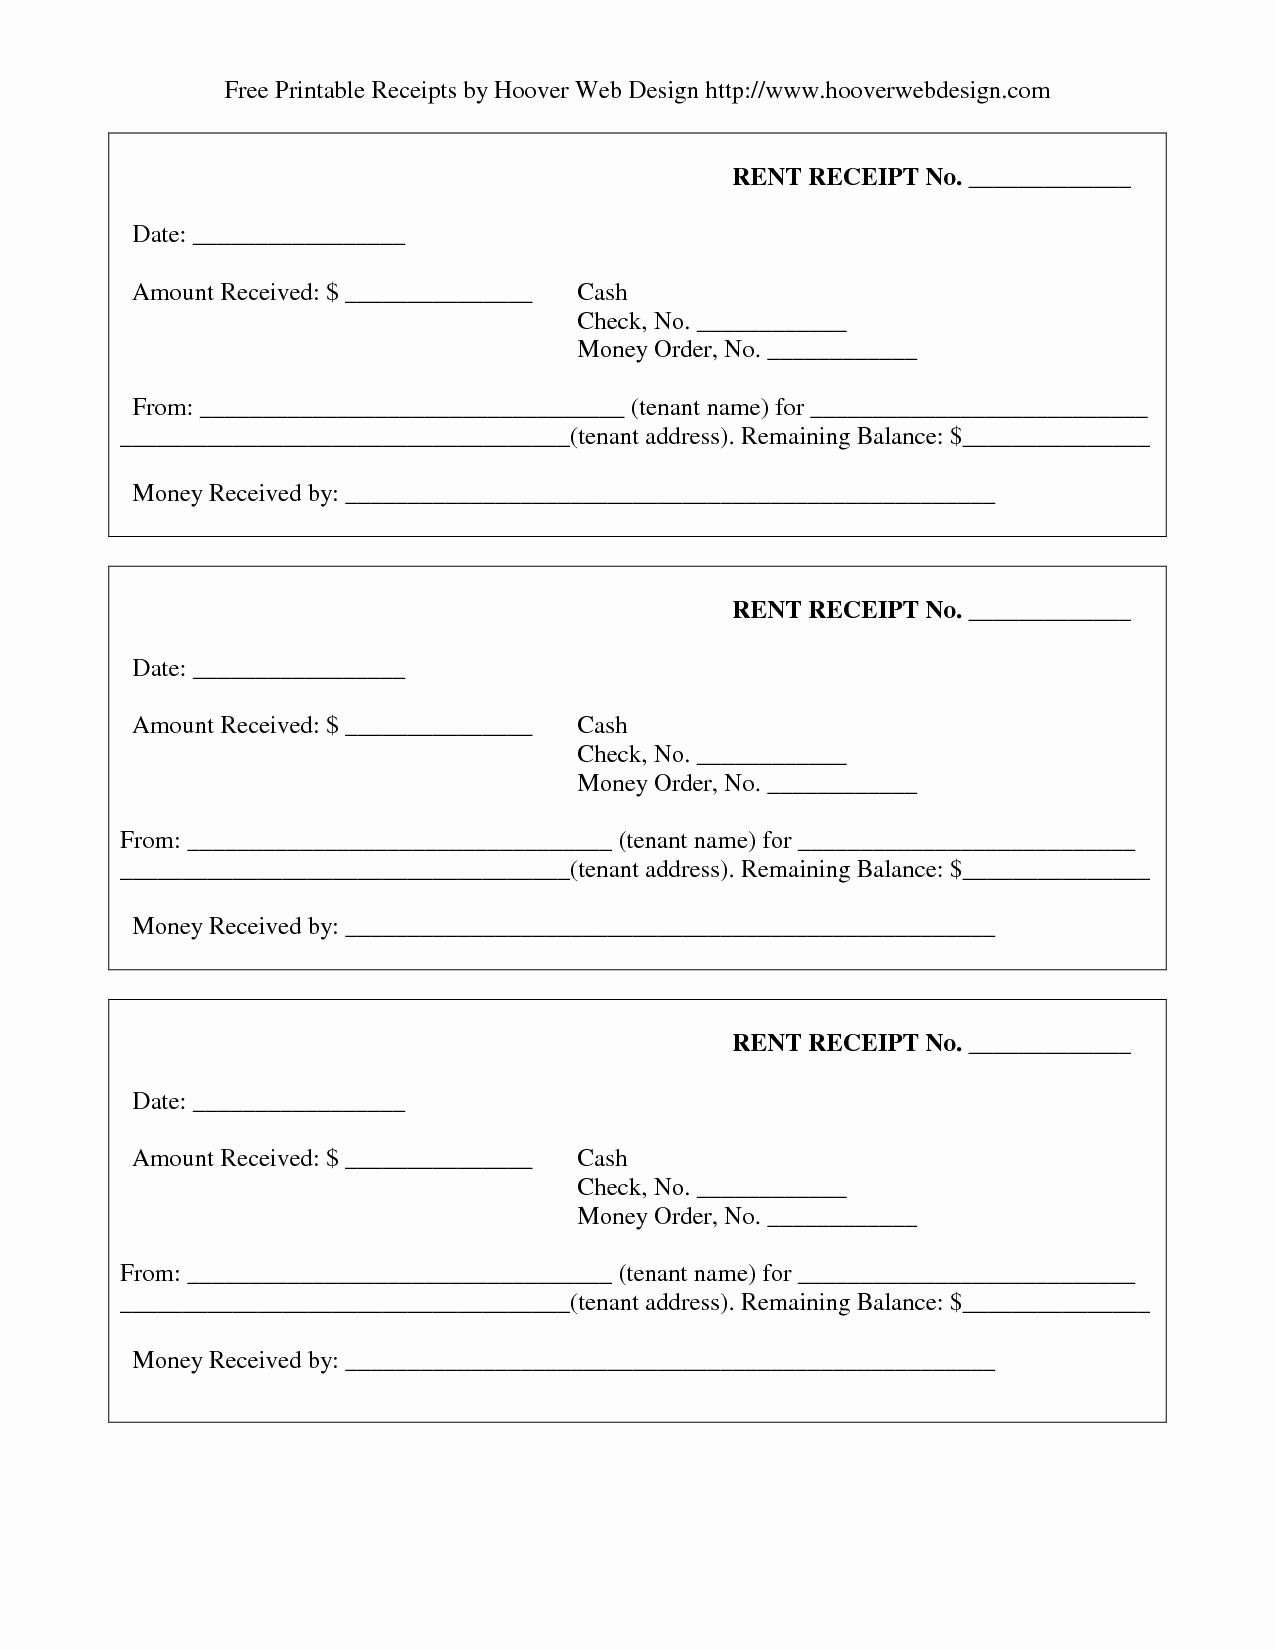 Free Printable Cash Receipt Template New 11 Best Of Free Printable Payment Receipt form